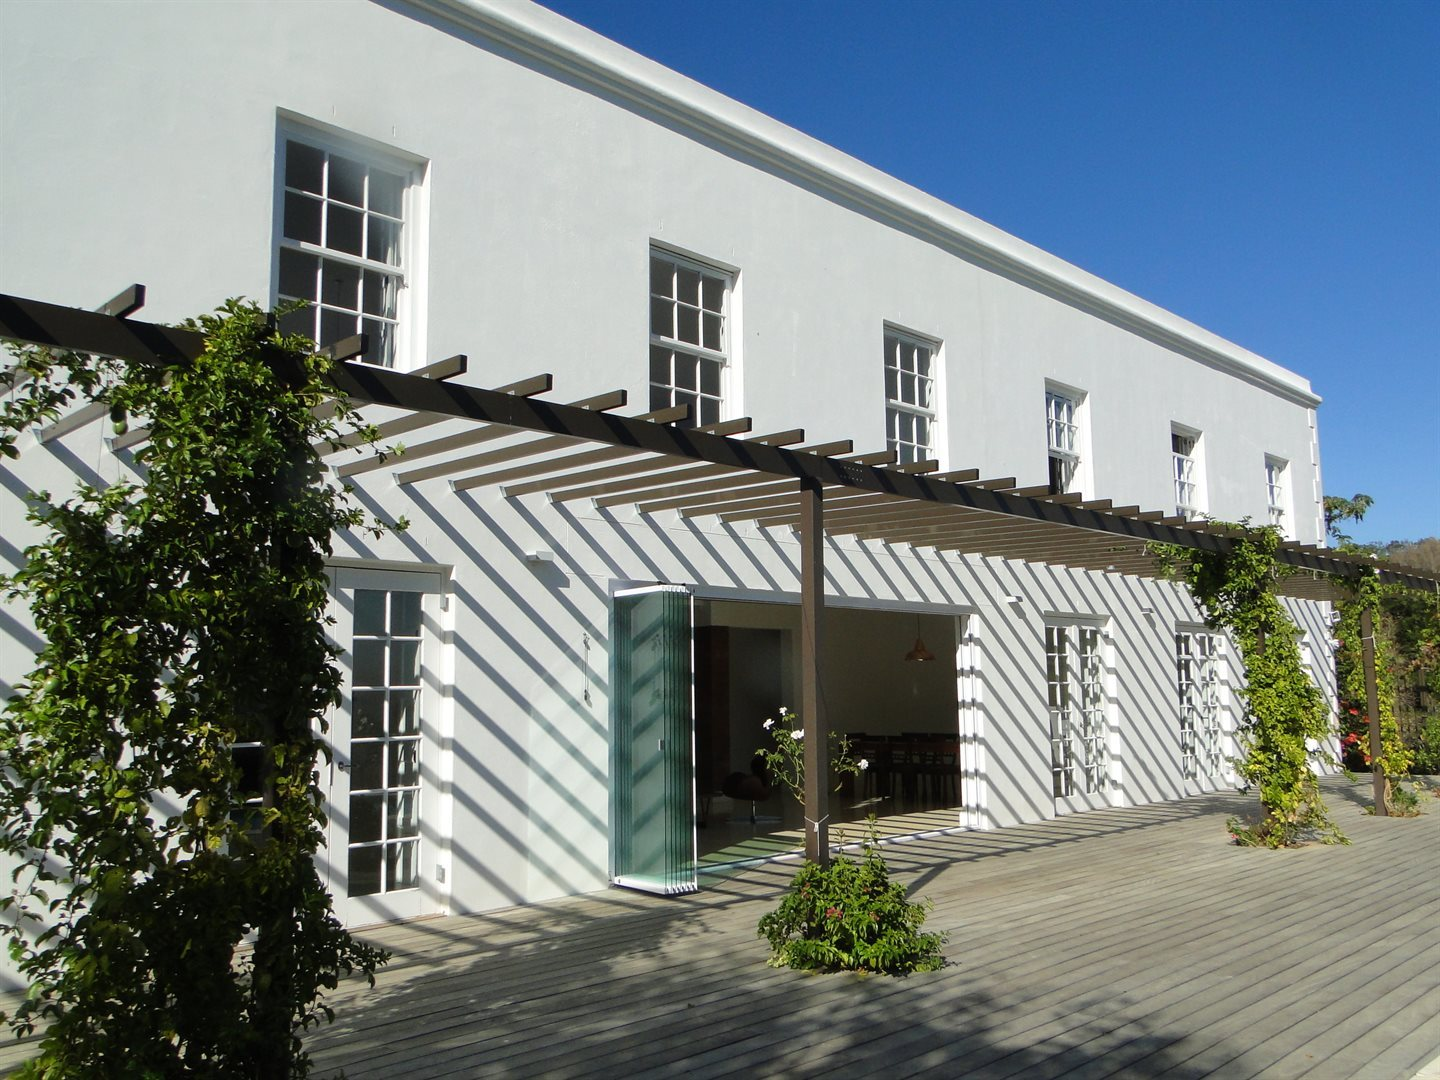 Property and Houses for sale in Stellenbosch Farms, Farms, 6 Bedrooms - ZAR 12,750,000